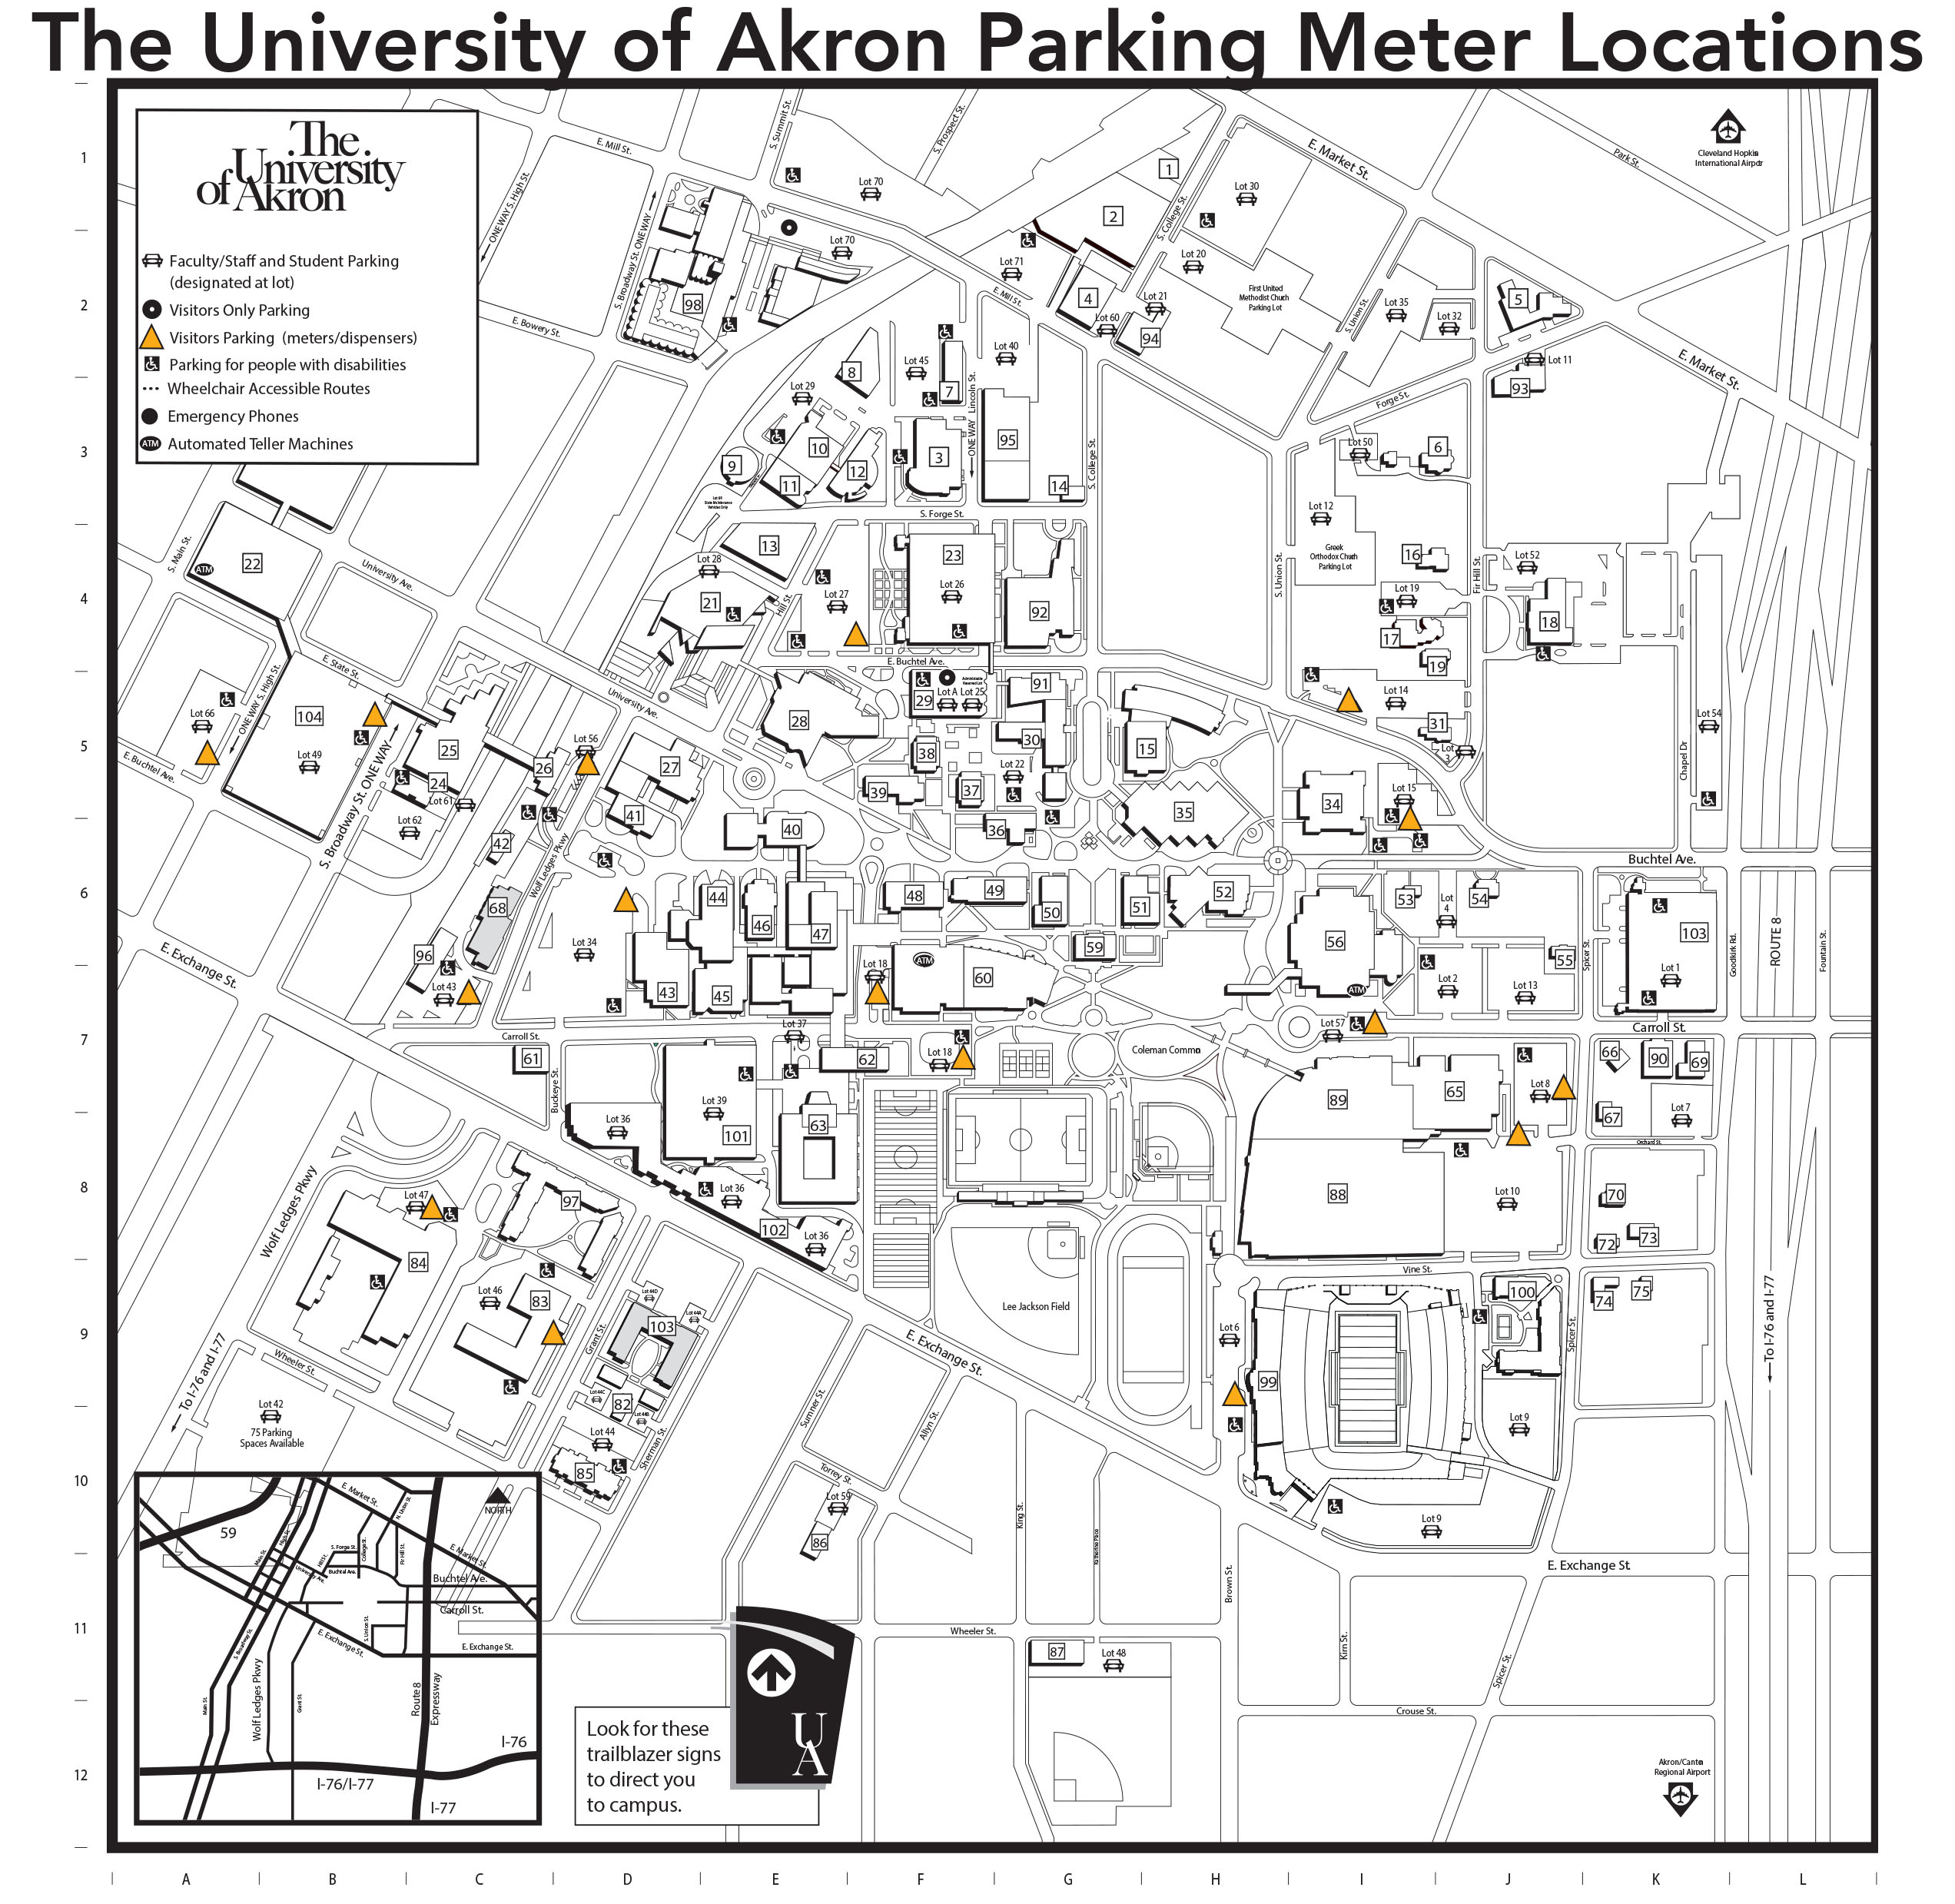 parking meter map thumb SRU3